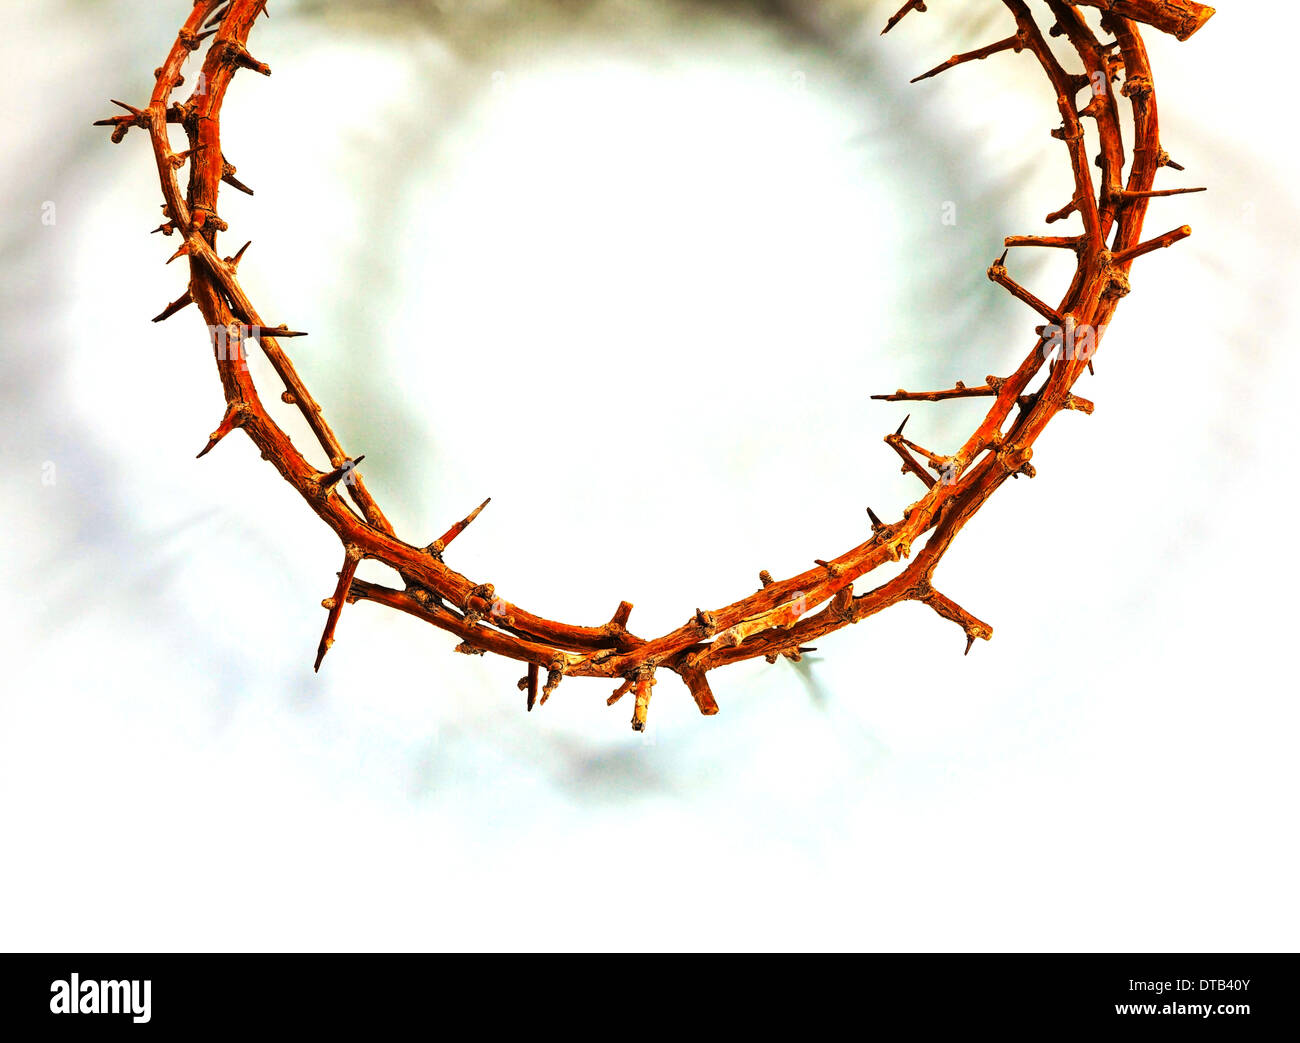 Thorn crown close up over the white background - Stock Image